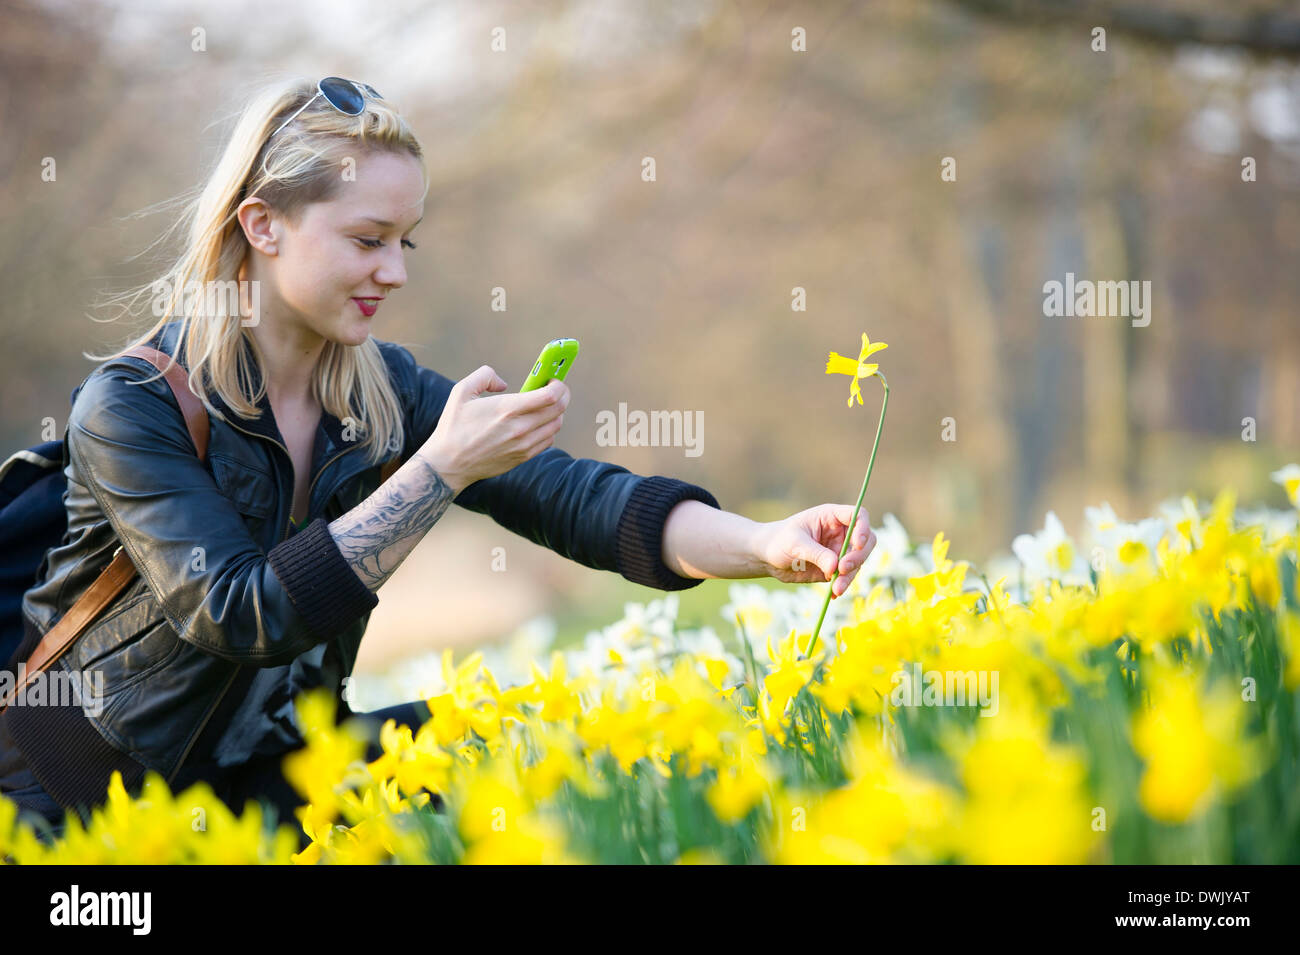 A girl photographs a daffodil flower using her smartphone. Stock Photo